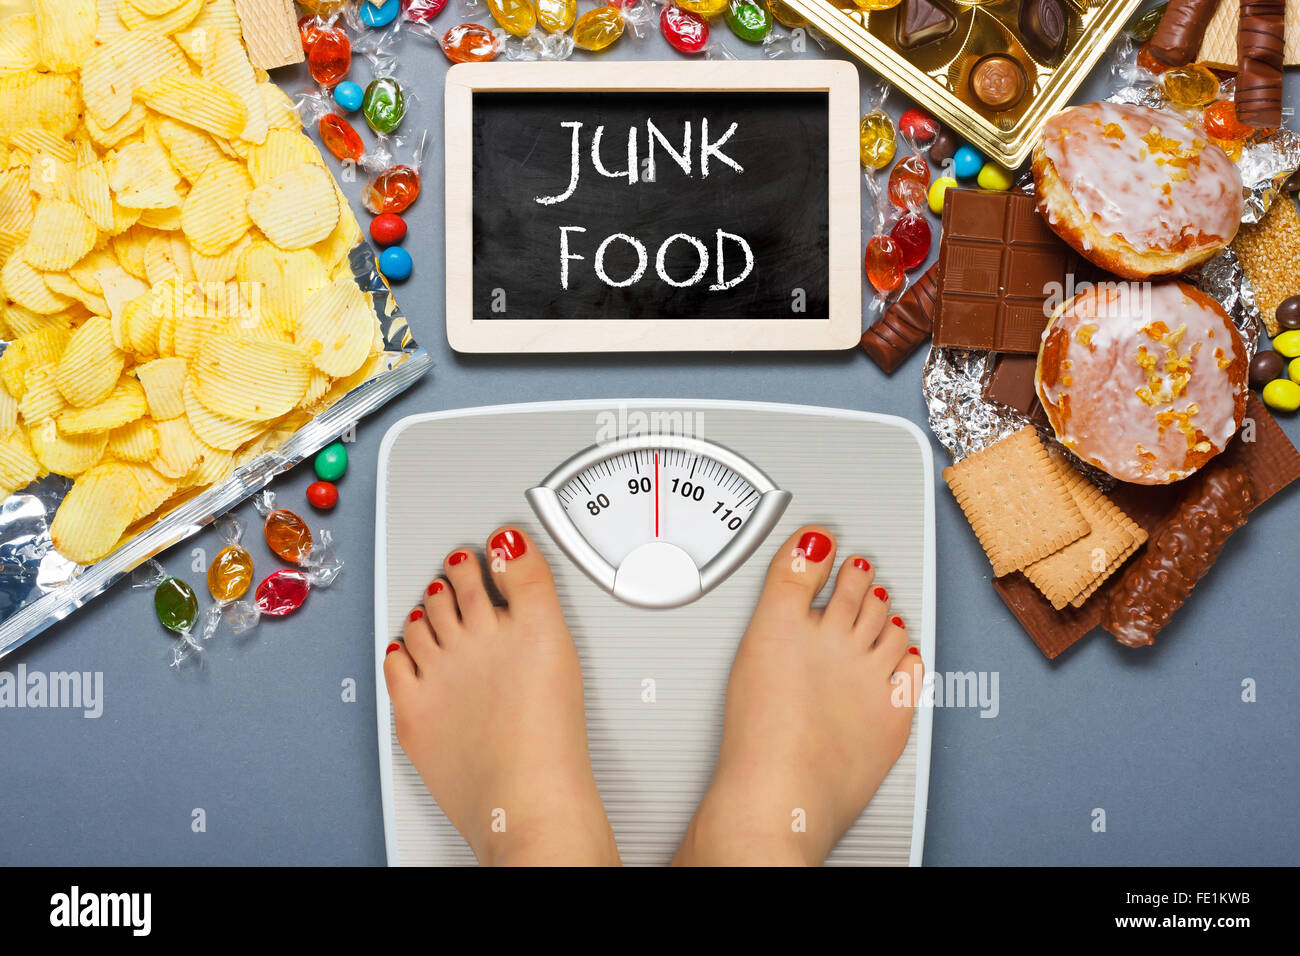 Unhealthy diet - overweight. Feet on bathroom scale Stock Photo